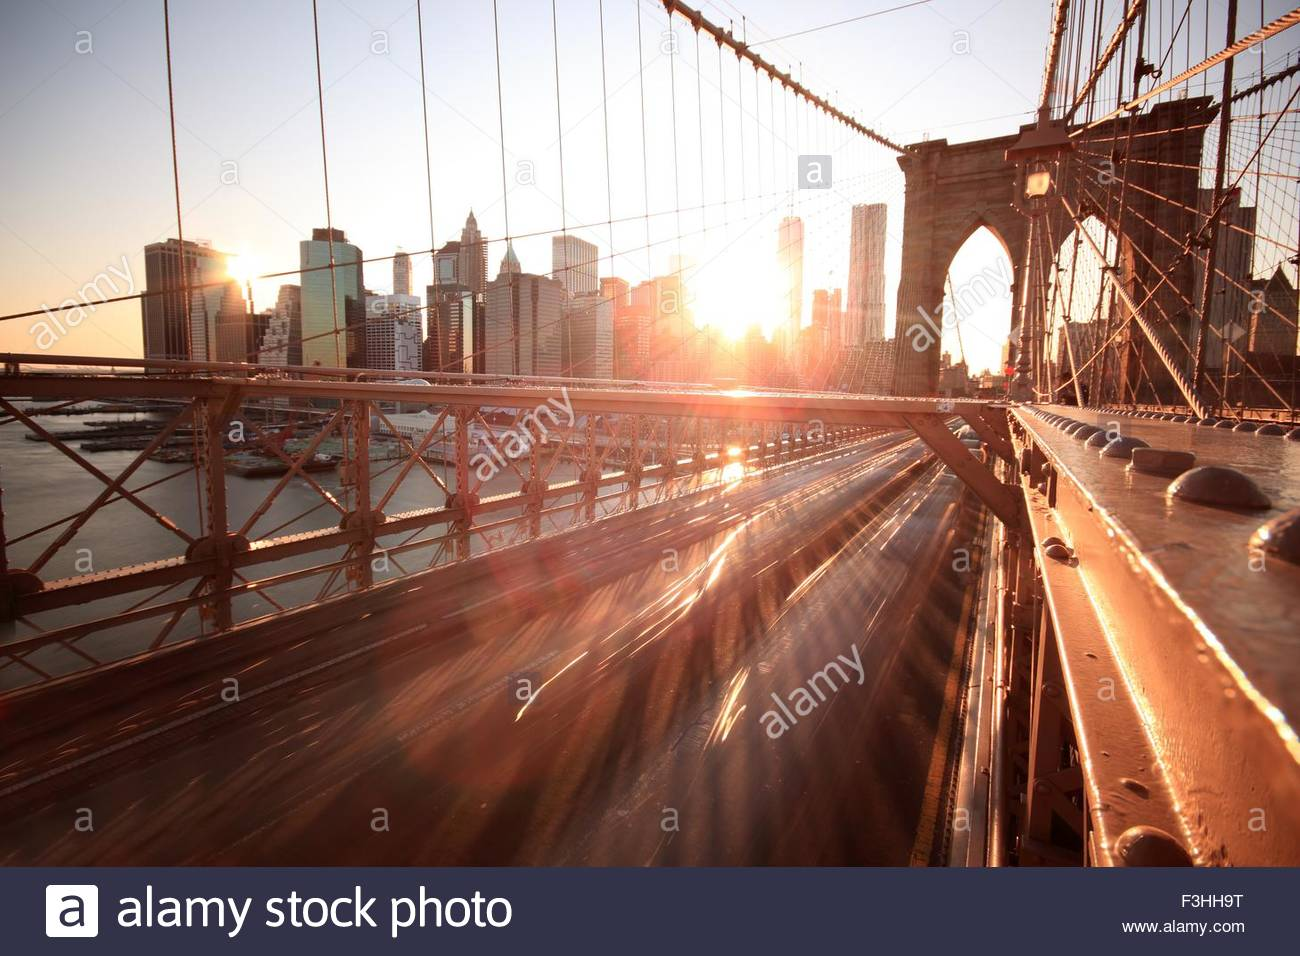 Cityscape and Brooklyn Bridge, Manhattan, New York City, USA - Stock Image